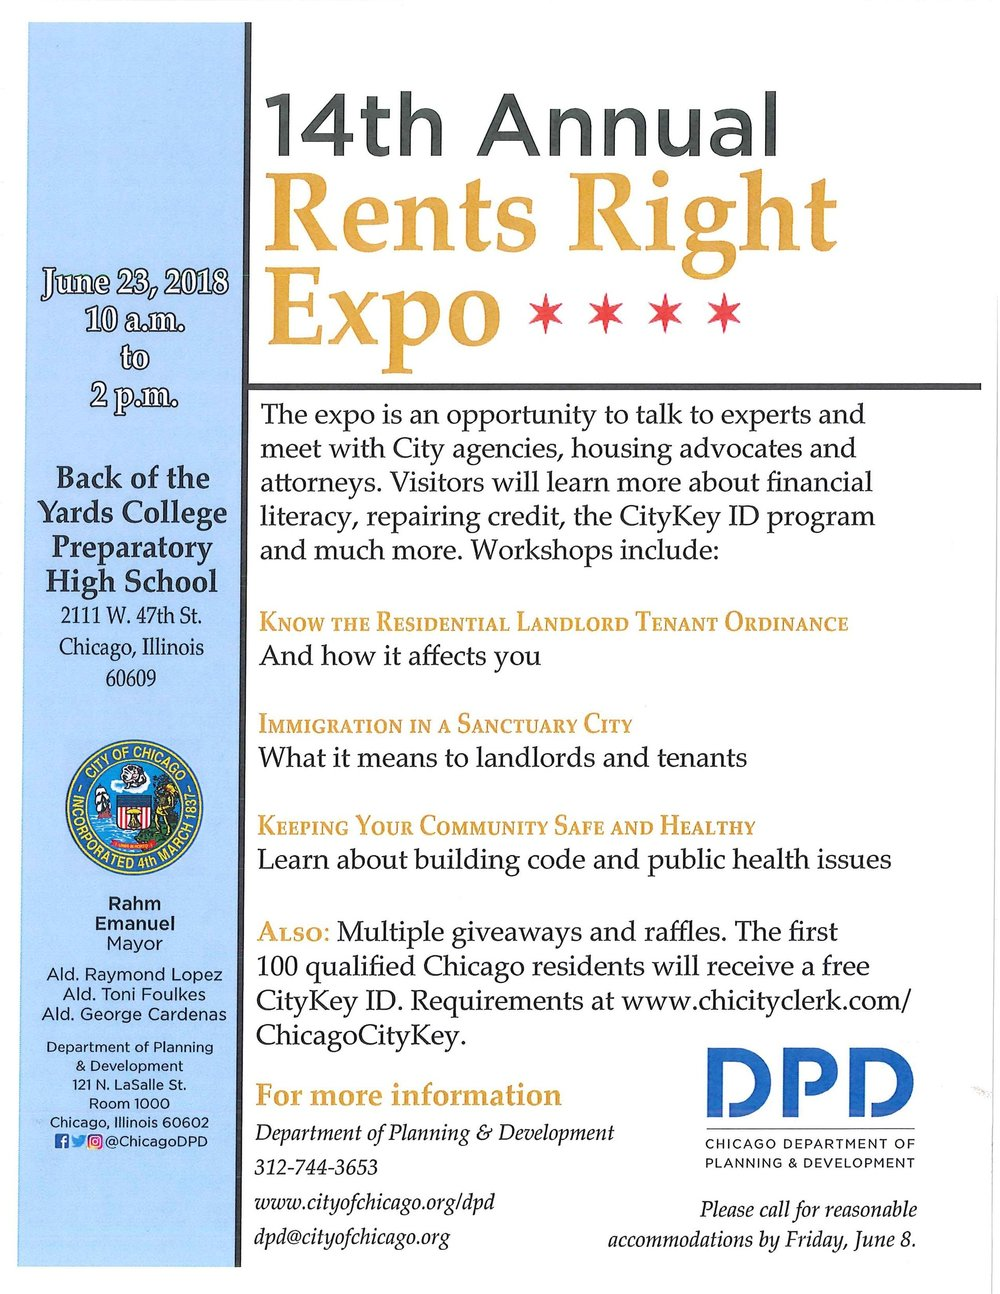 14th Annual Renters Rights.jpg